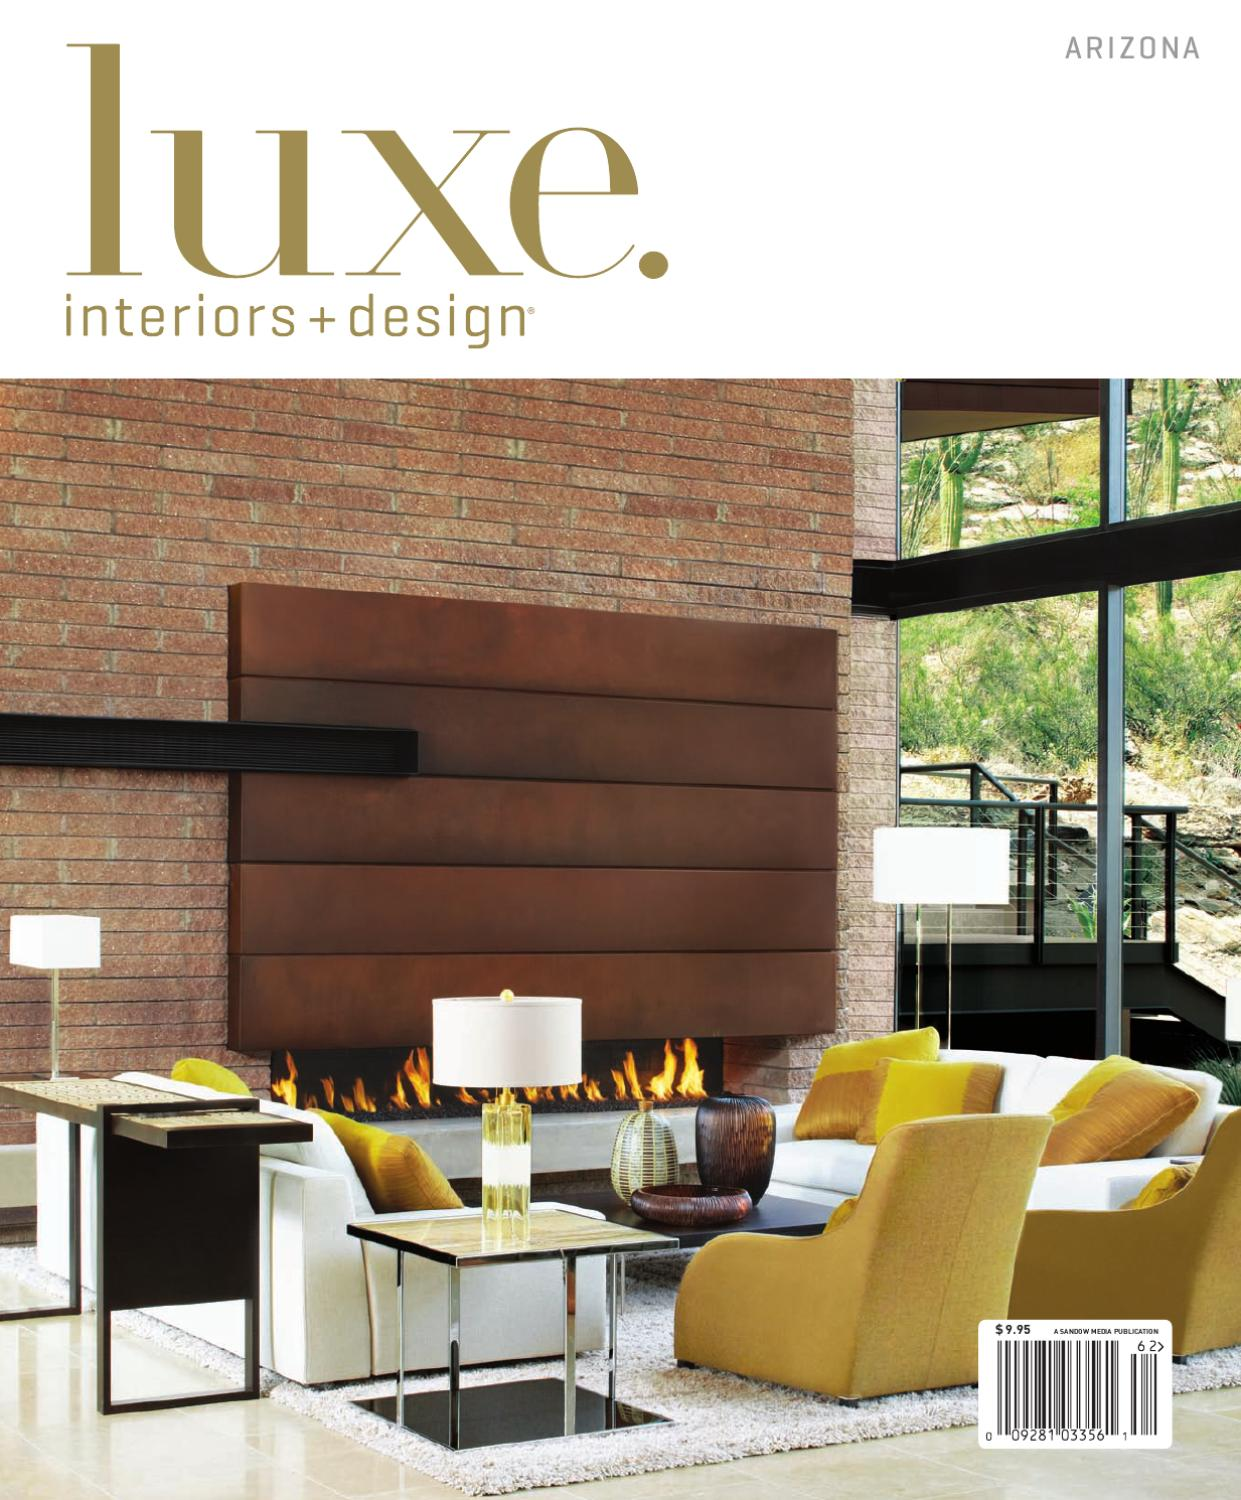 Luxe interior design arizona by sandow media issuu for Luxe furniture and design